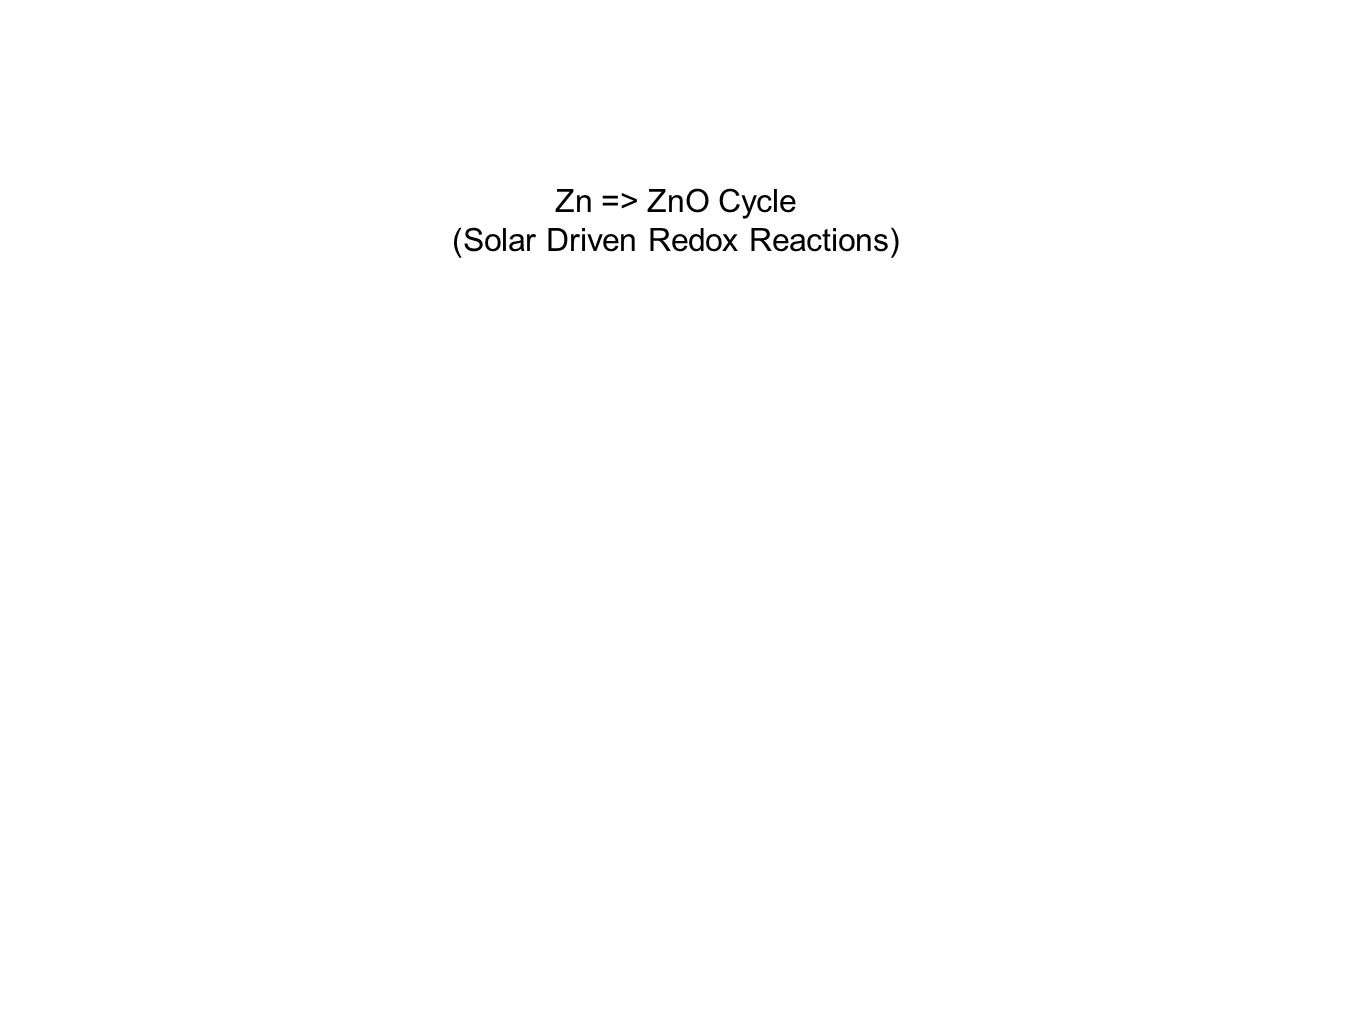 Zn => ZnO Cycle (Solar Driven Redox Reactions)